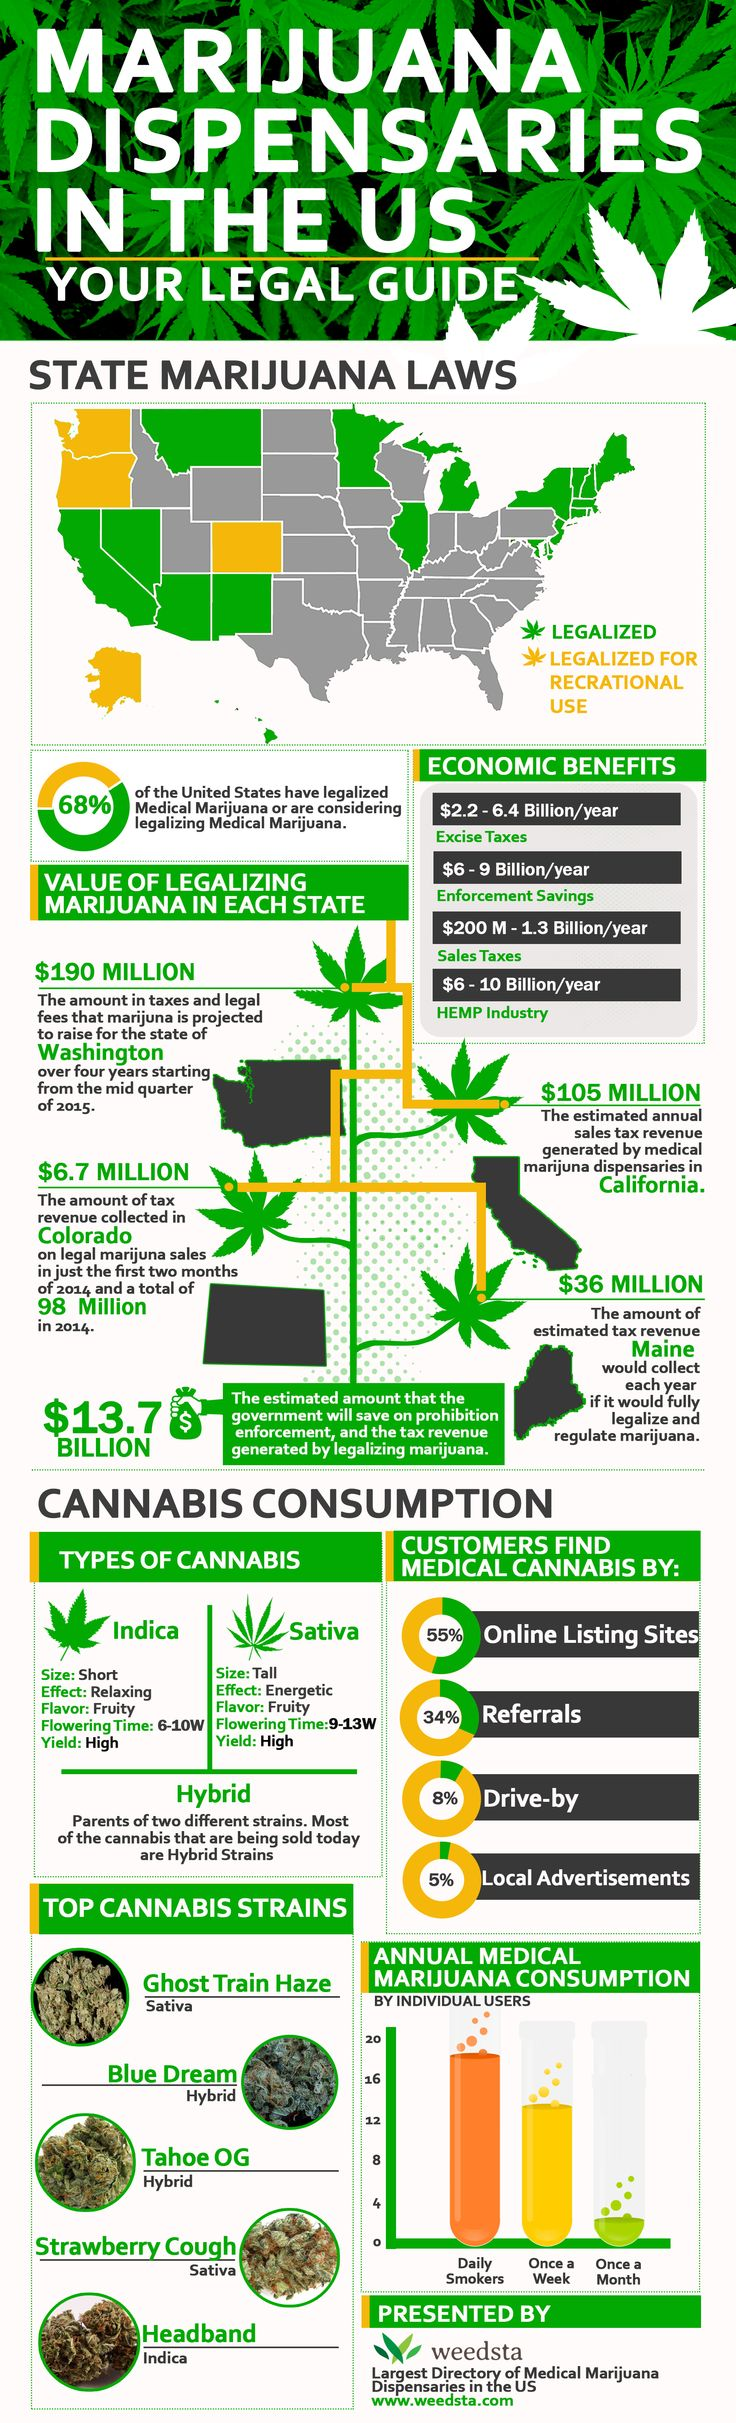 68% of the United States have legalized Medical Marijuana or are considering legalizing Medical Marijuana Read here https://www.weedsta.com/